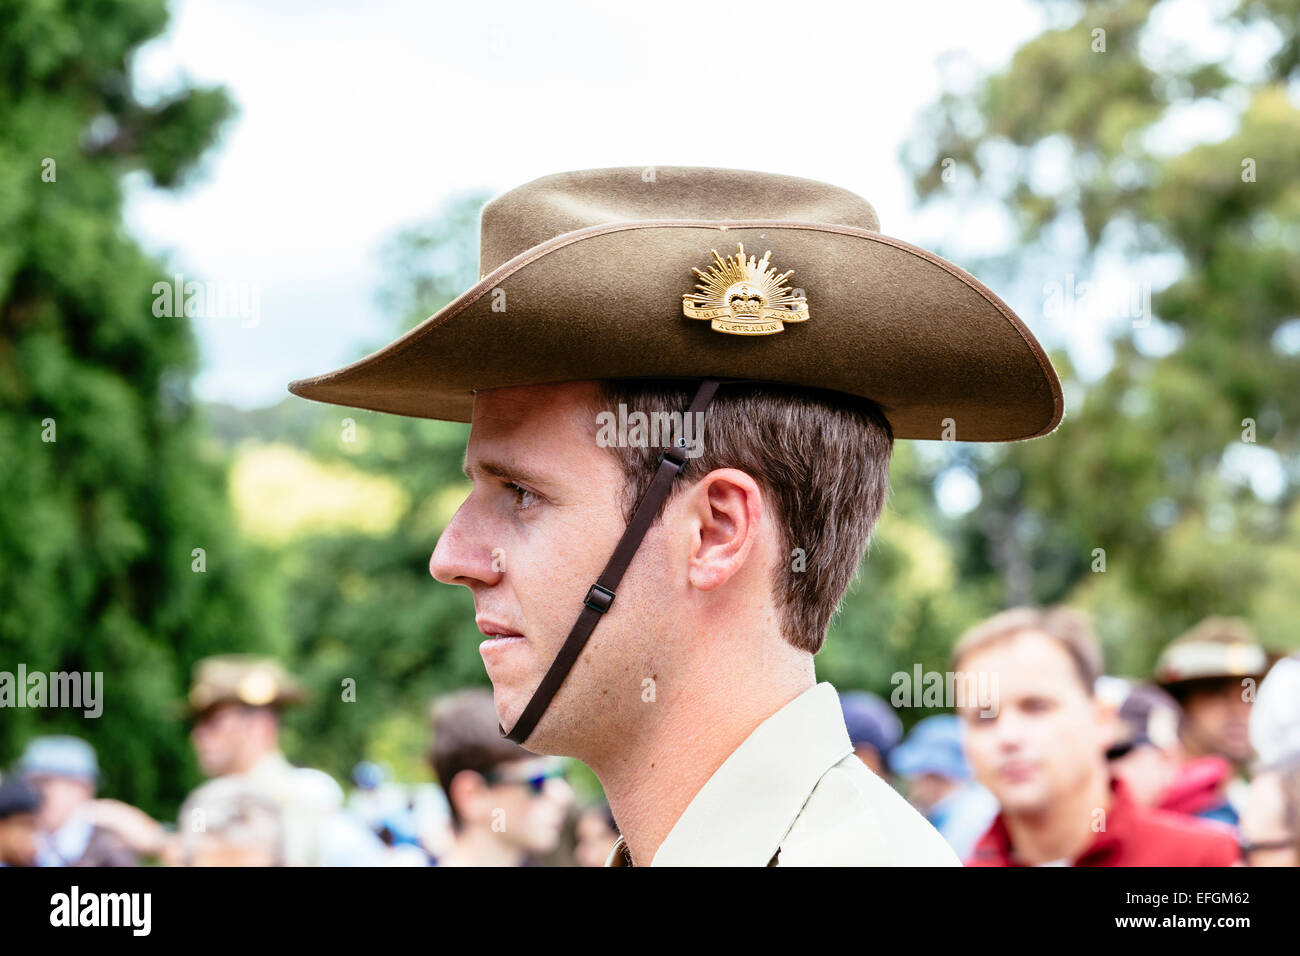 Australian soldier mingling with crowds at Shrine of Remembrance, Melbourne, following Australia Day 21 Gun Salute - Stock Image